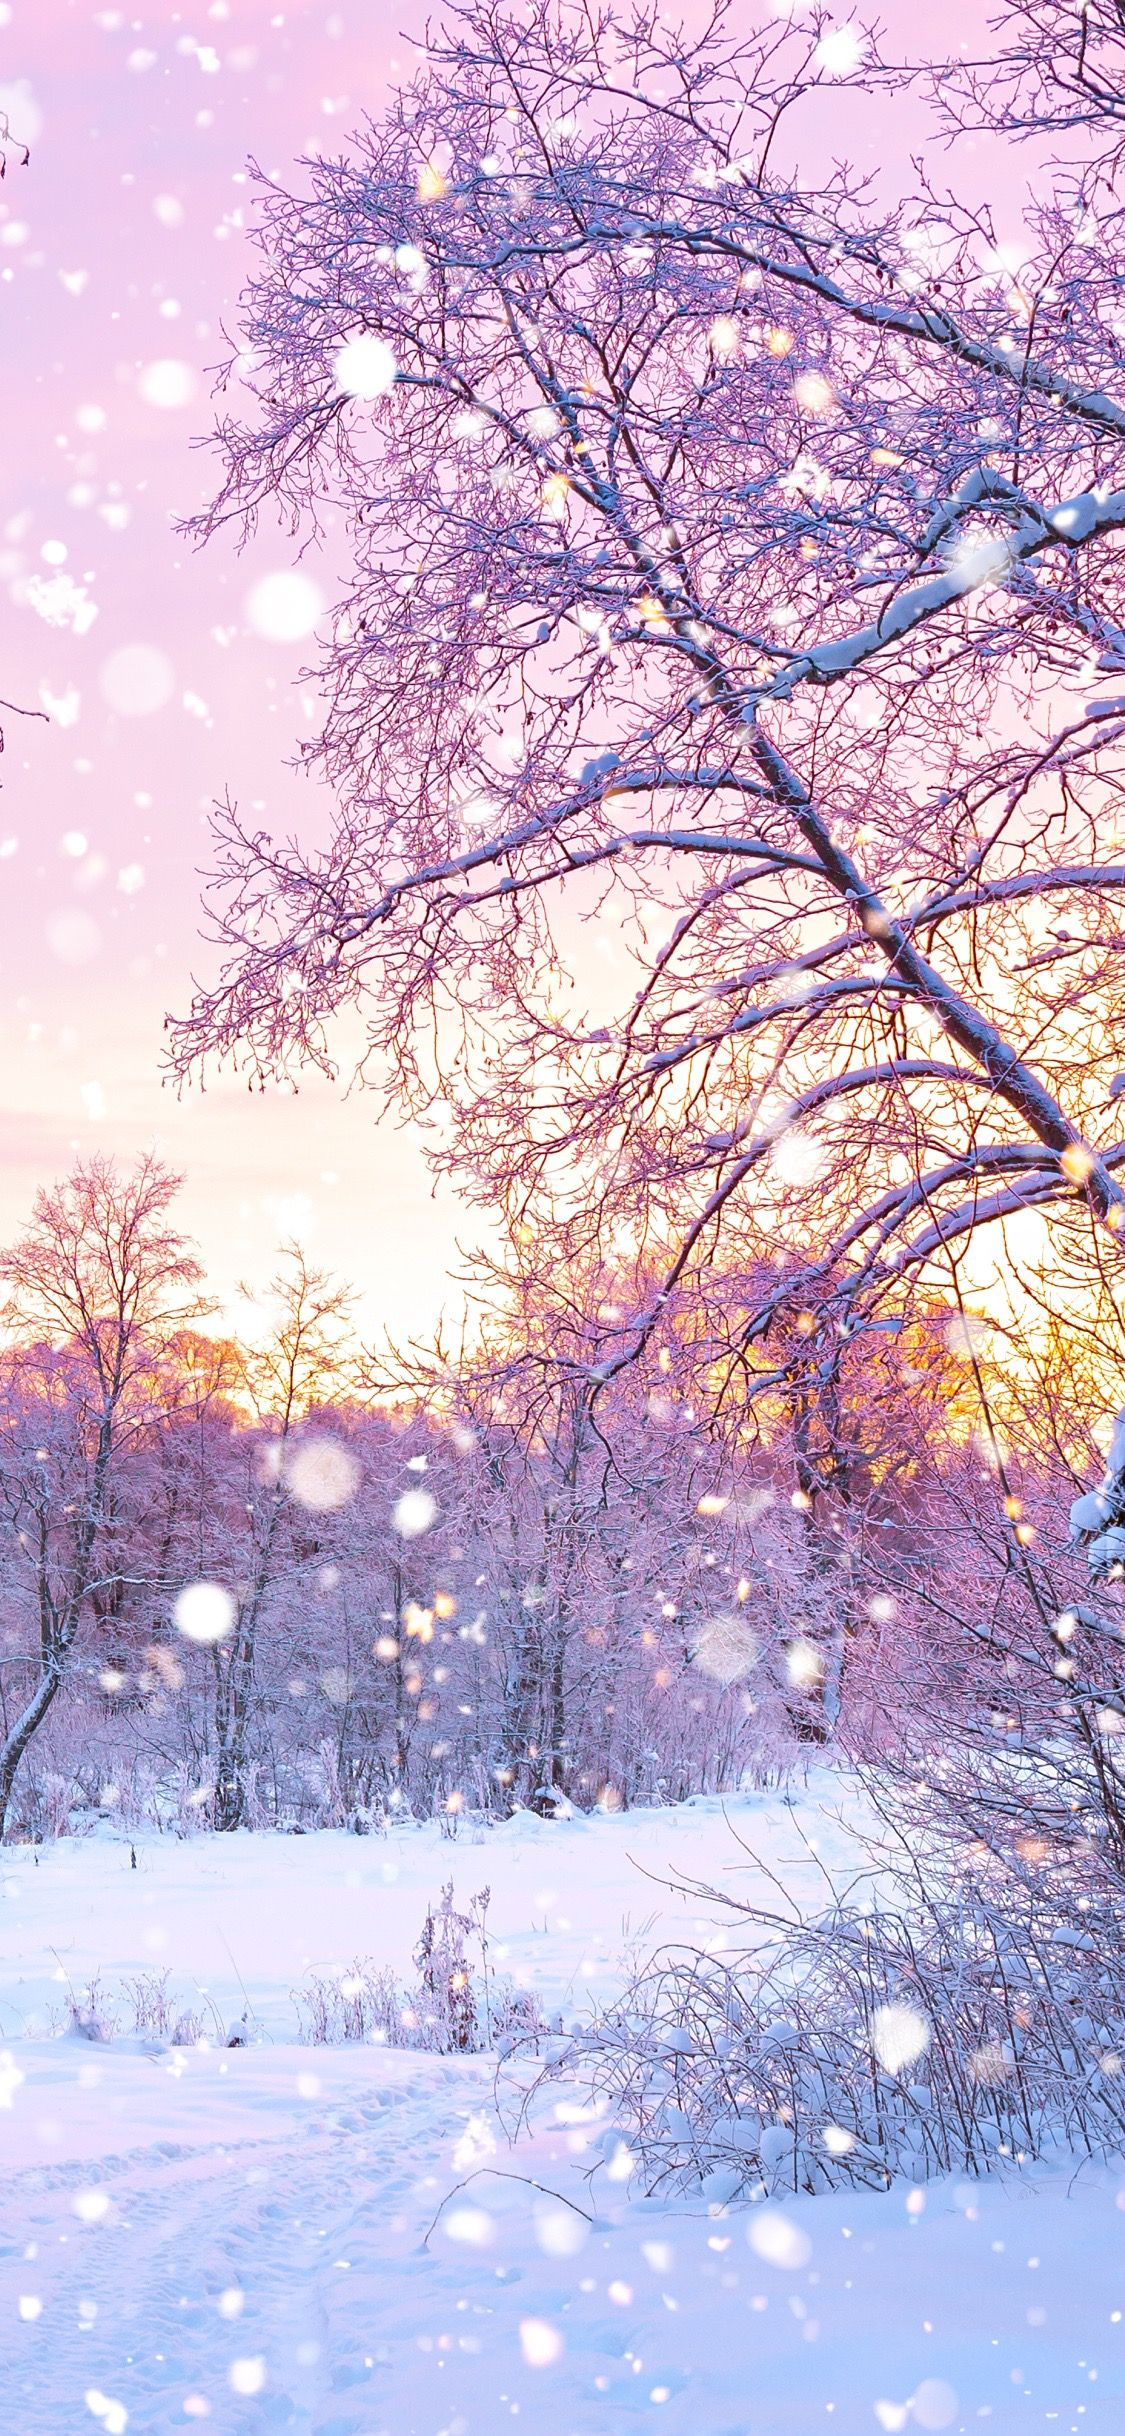 Snow iPhone wallpaper Nature wallpaper Winter wallpaper